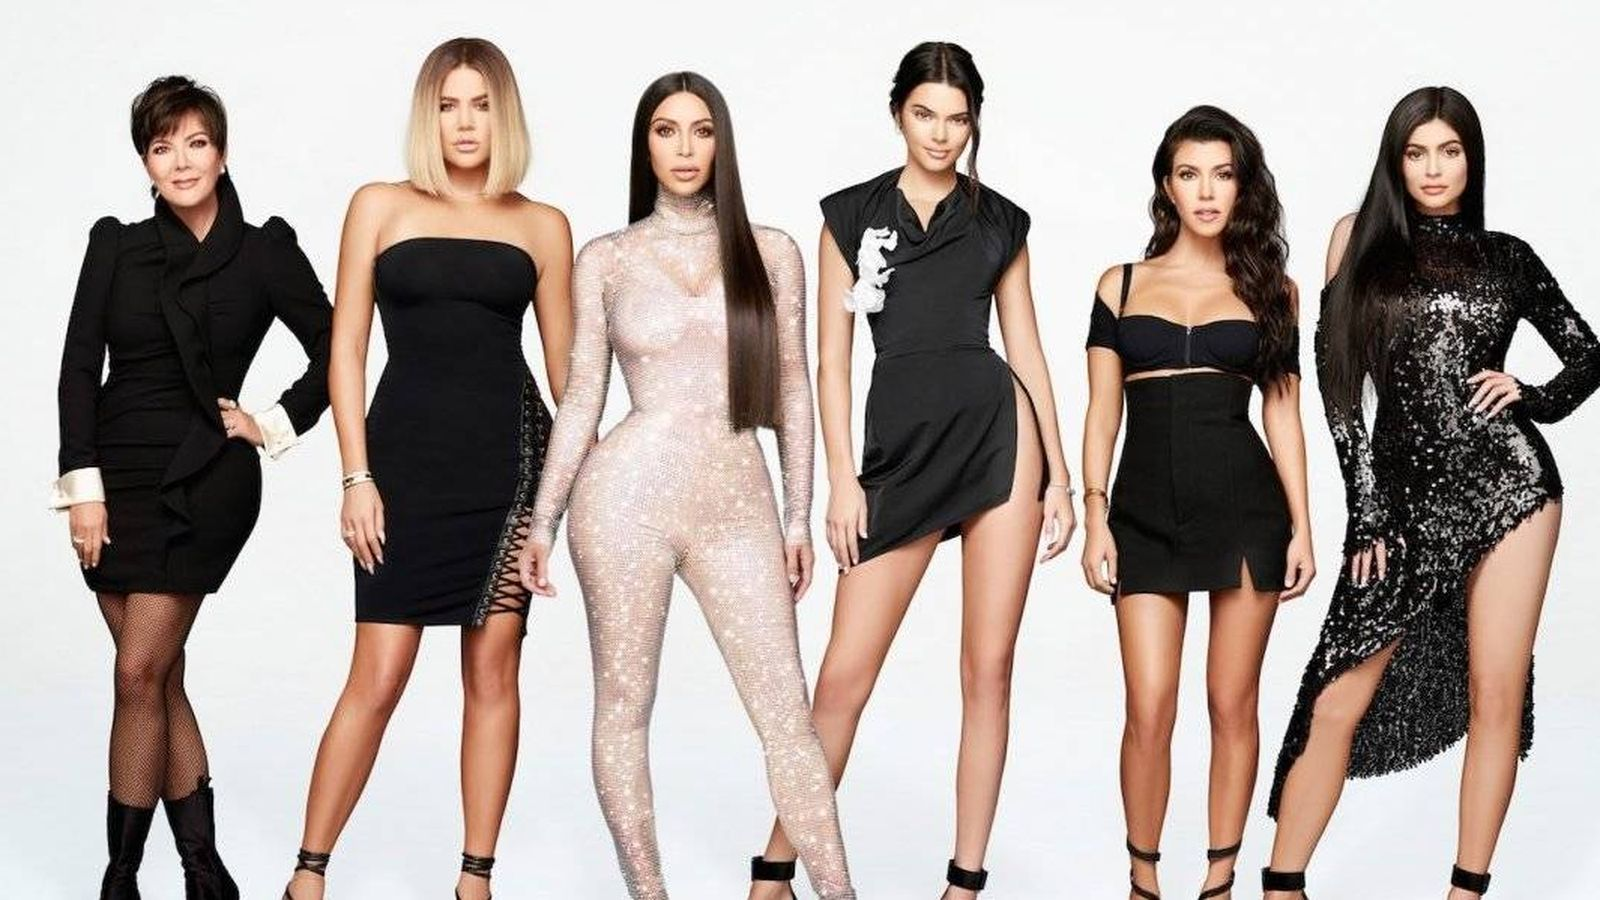 Foto: 'Keeping up with the Kardashians'.